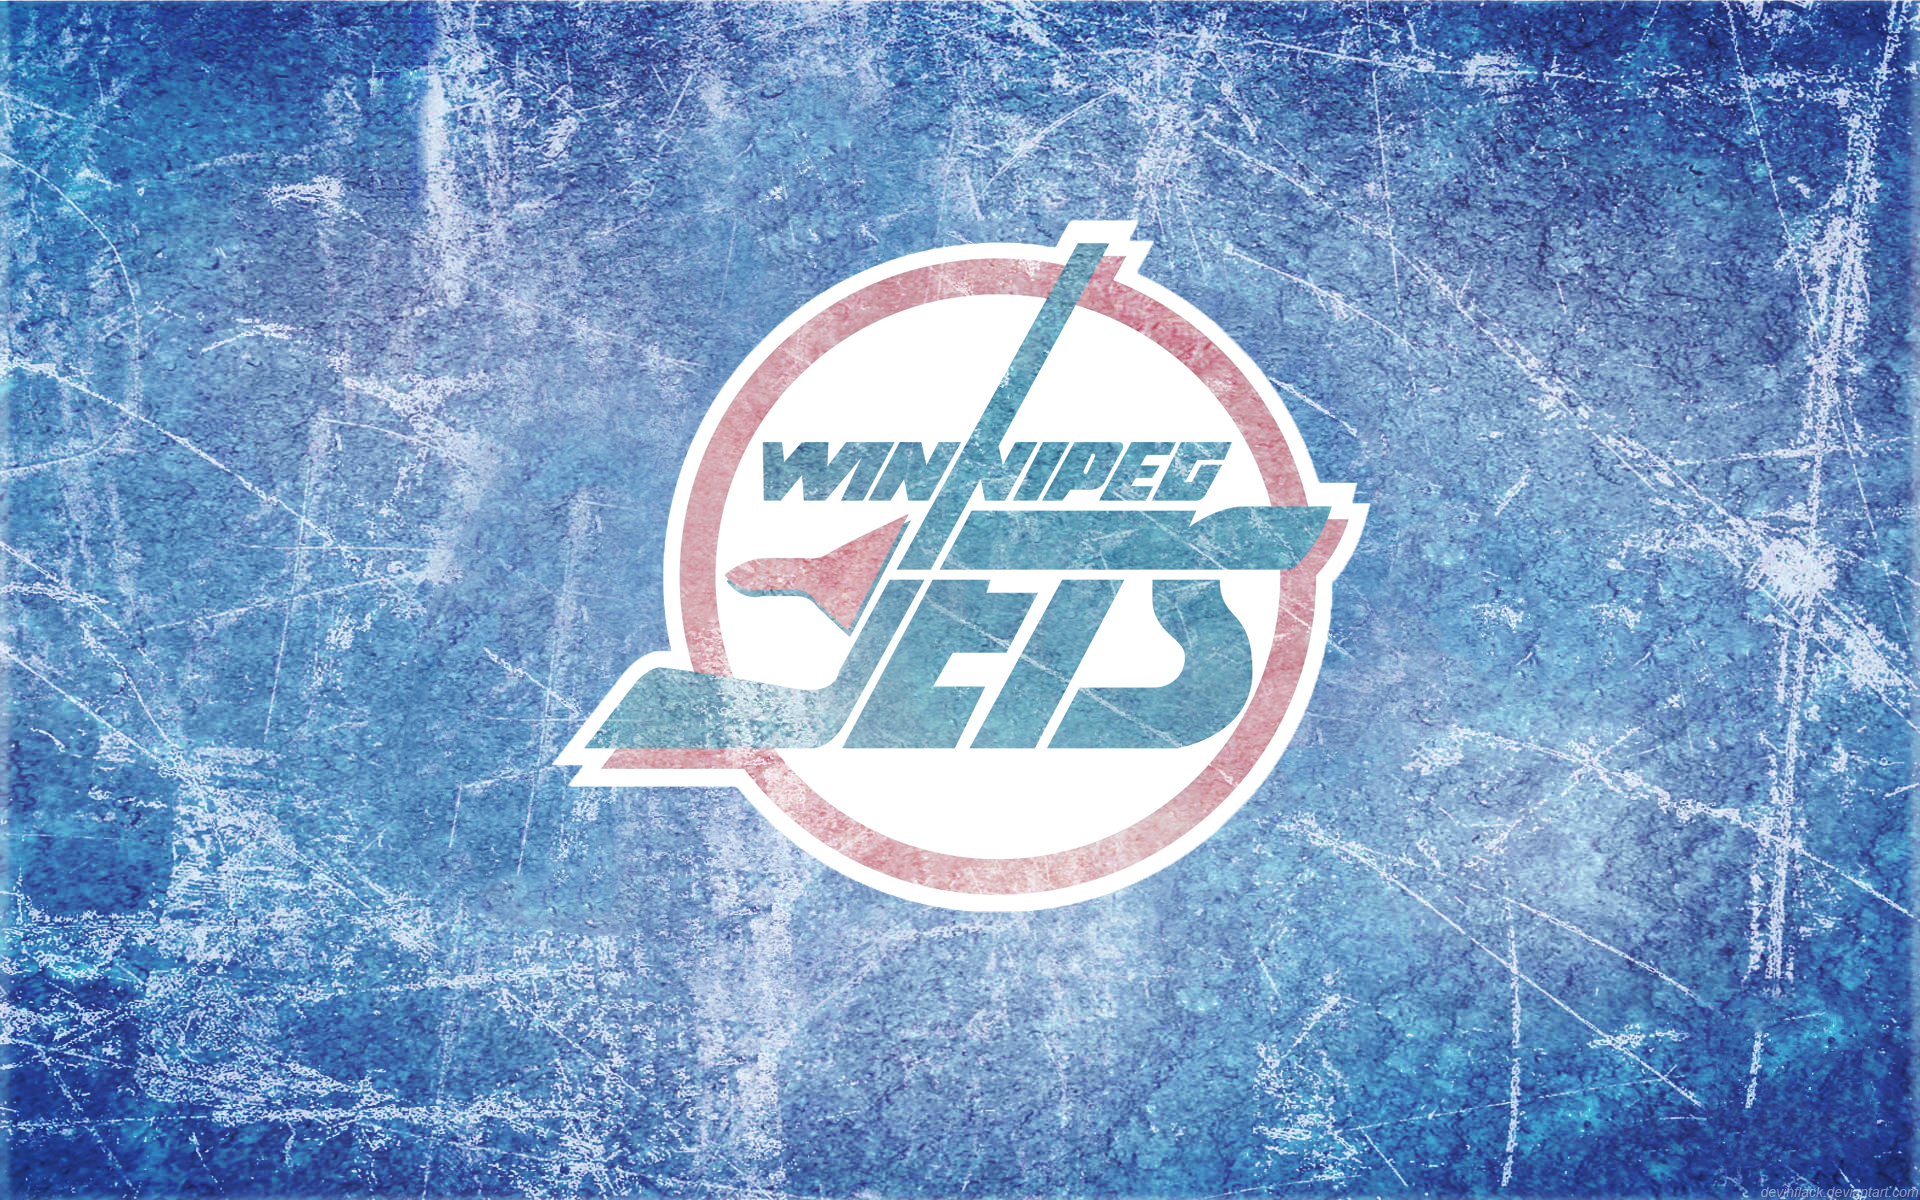 Winnipeg Jets Logo wallpaper   210616 1920x1200